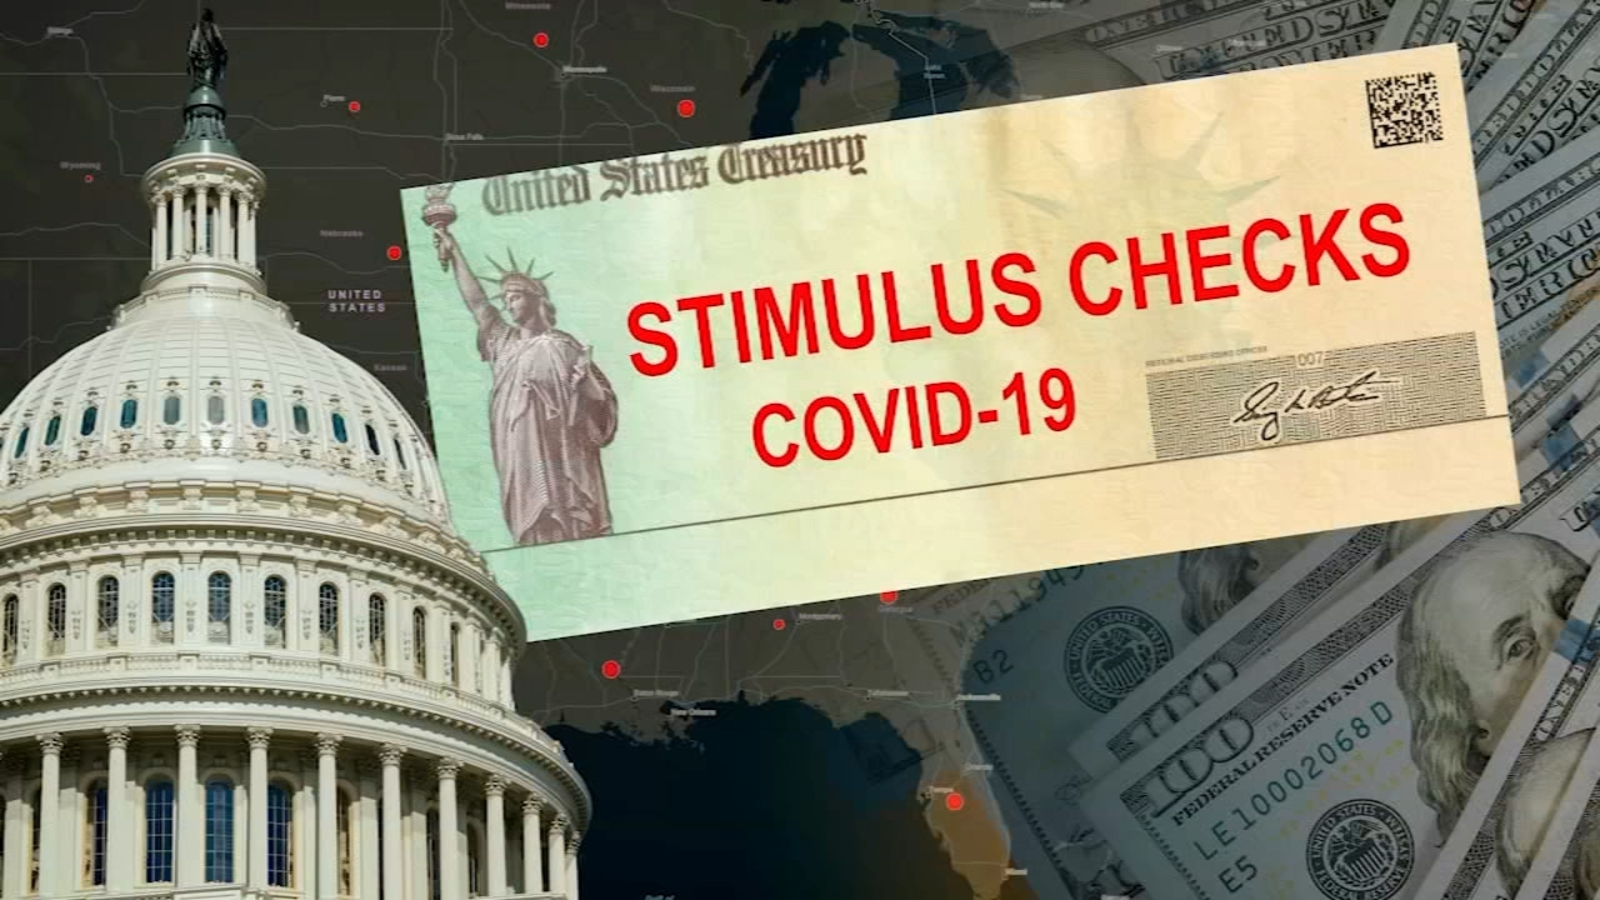 Timely Second Stimulus Check Of $1,200? - Freebies Frenzy